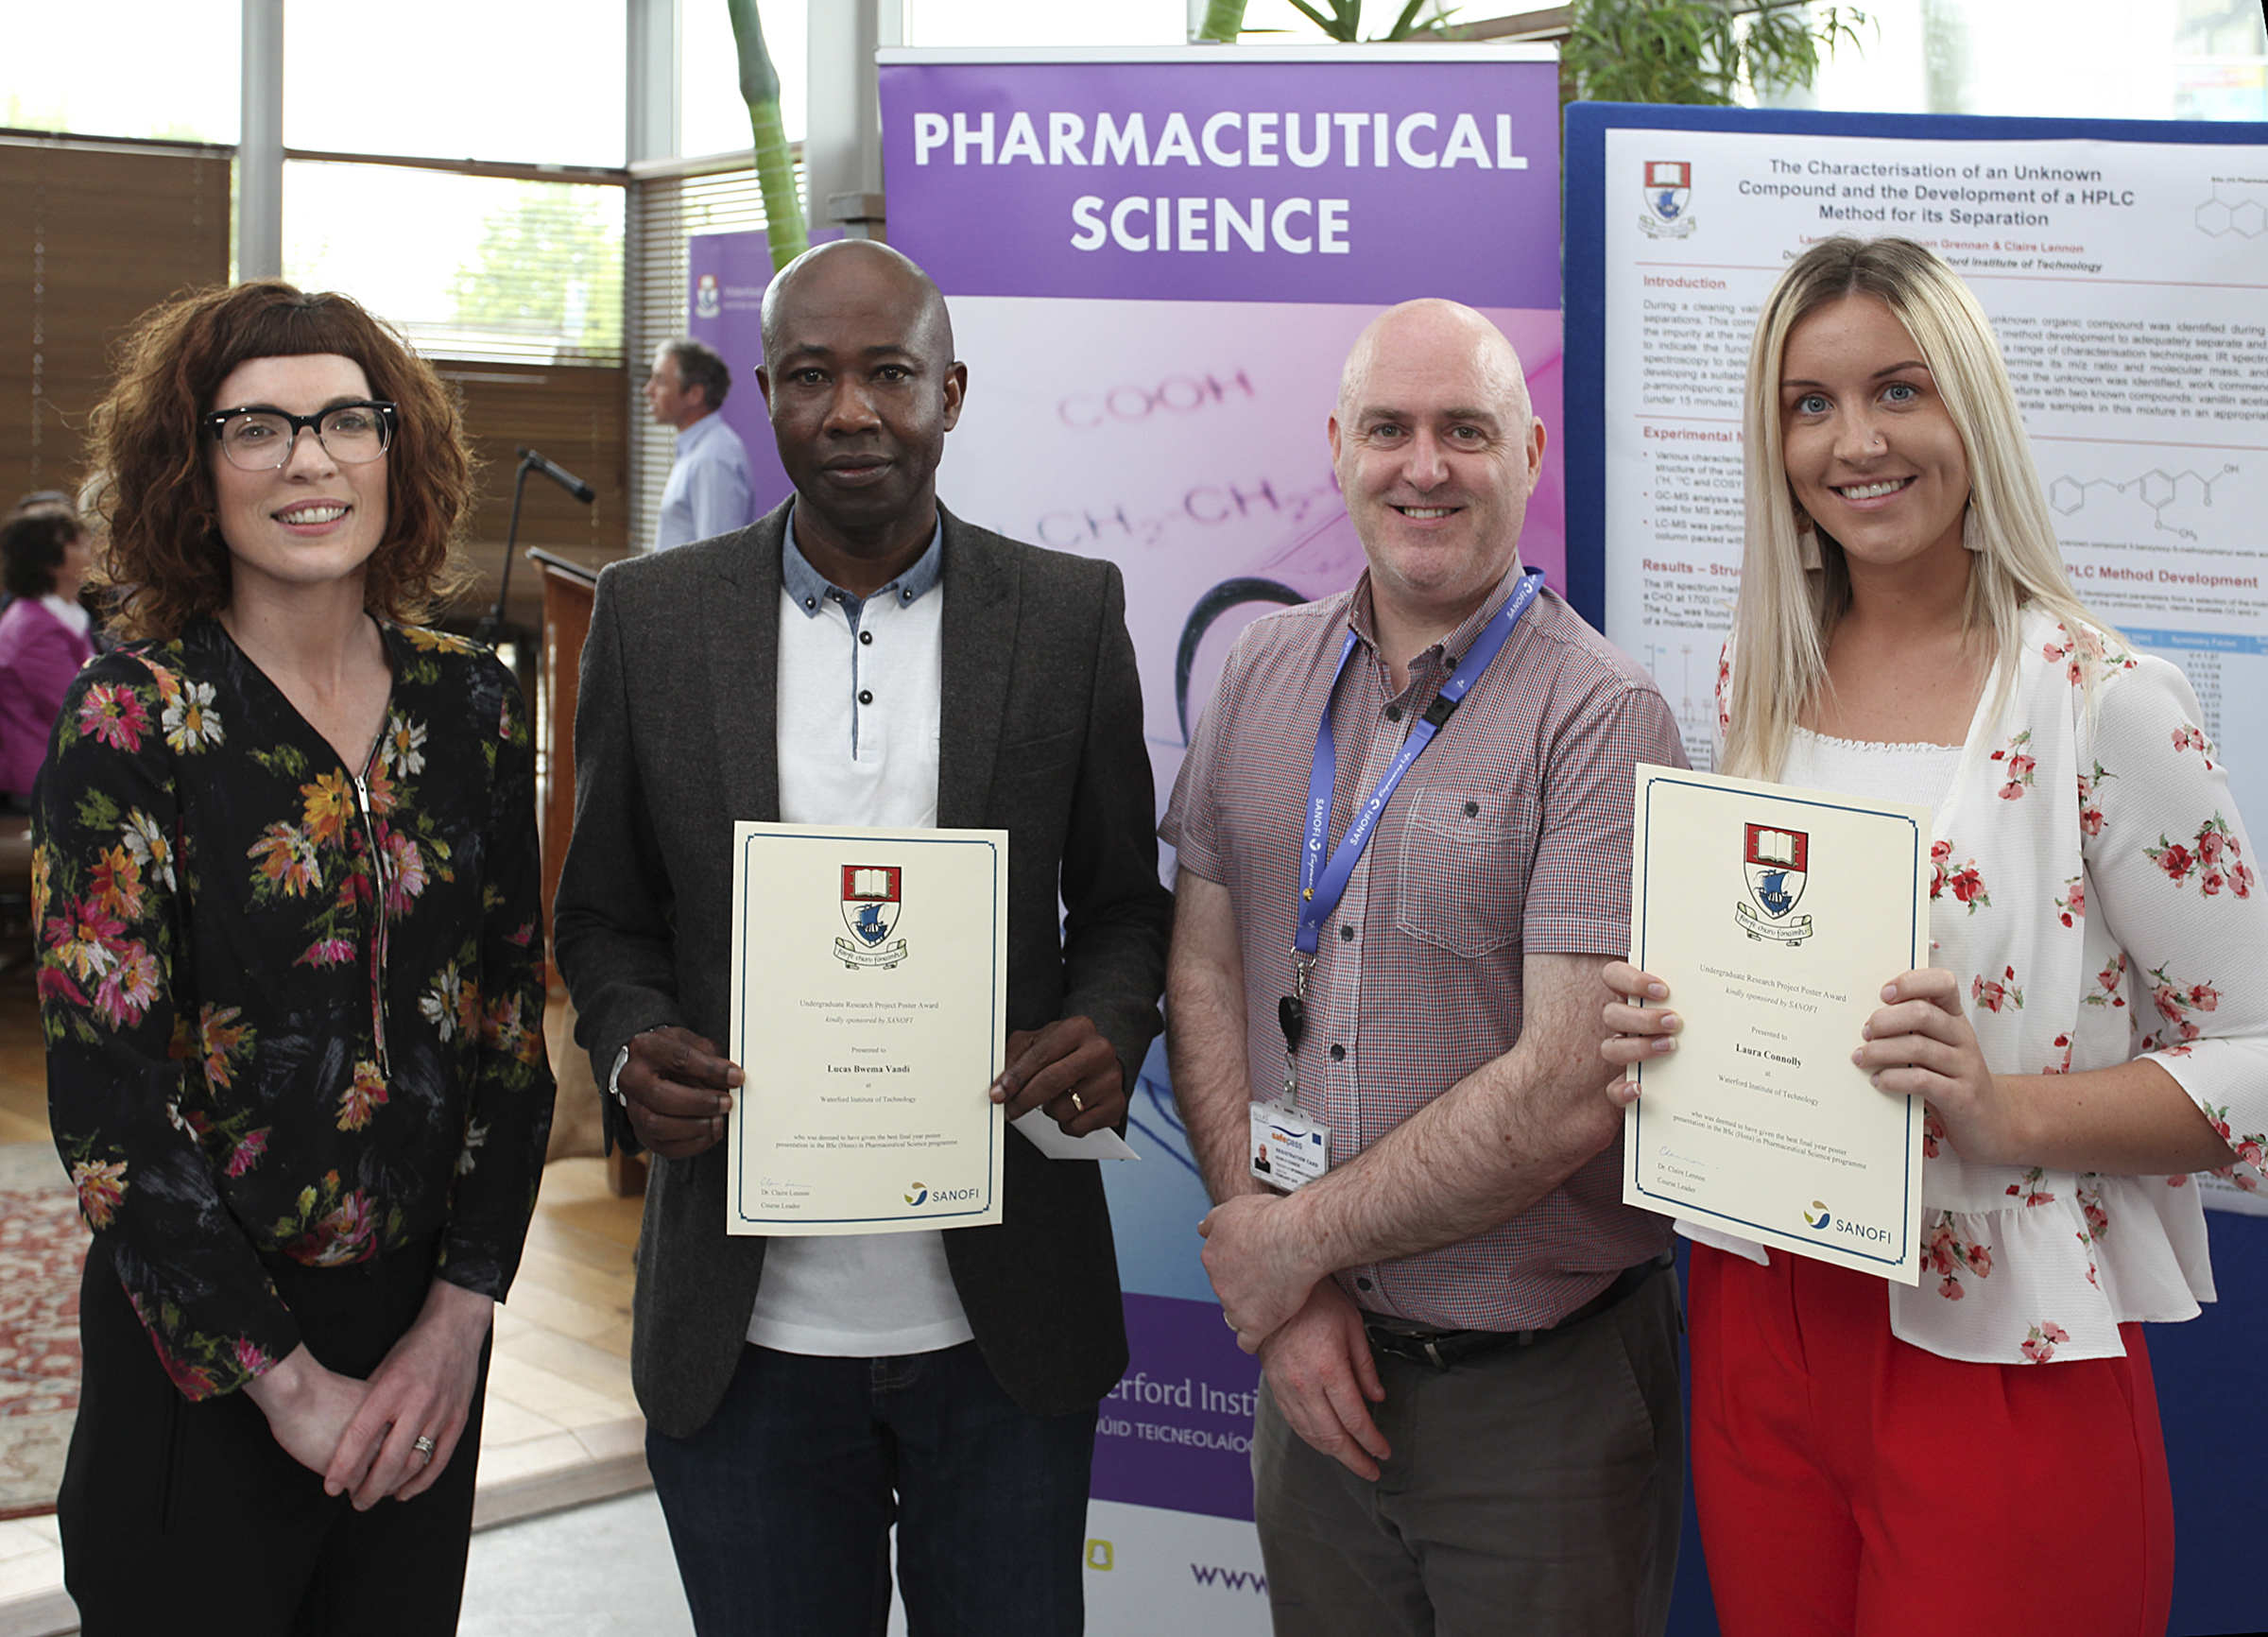 Students of the BSc (Hons) in Pharmaceutical Science course Laura Connolly and Lucas Bwema Vandi were the winners of the Final Year Research Project Poster Award which was sponsored by Sanofi. Pictured second from left is Lucas.